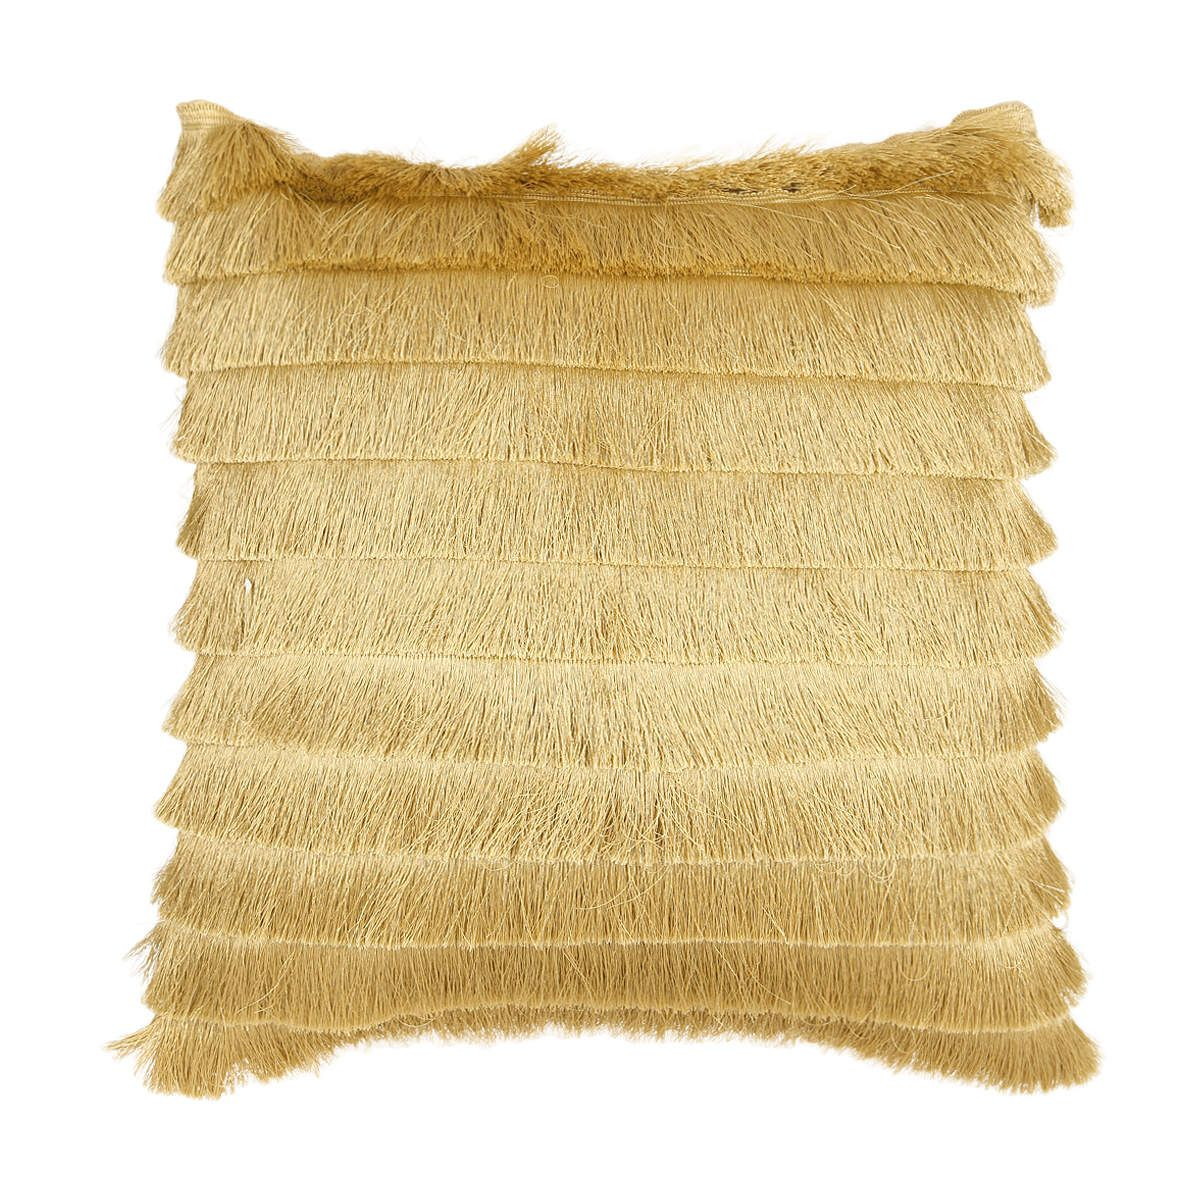 Avery Cushion Gold Kmart in 2019 Bedroom cushions